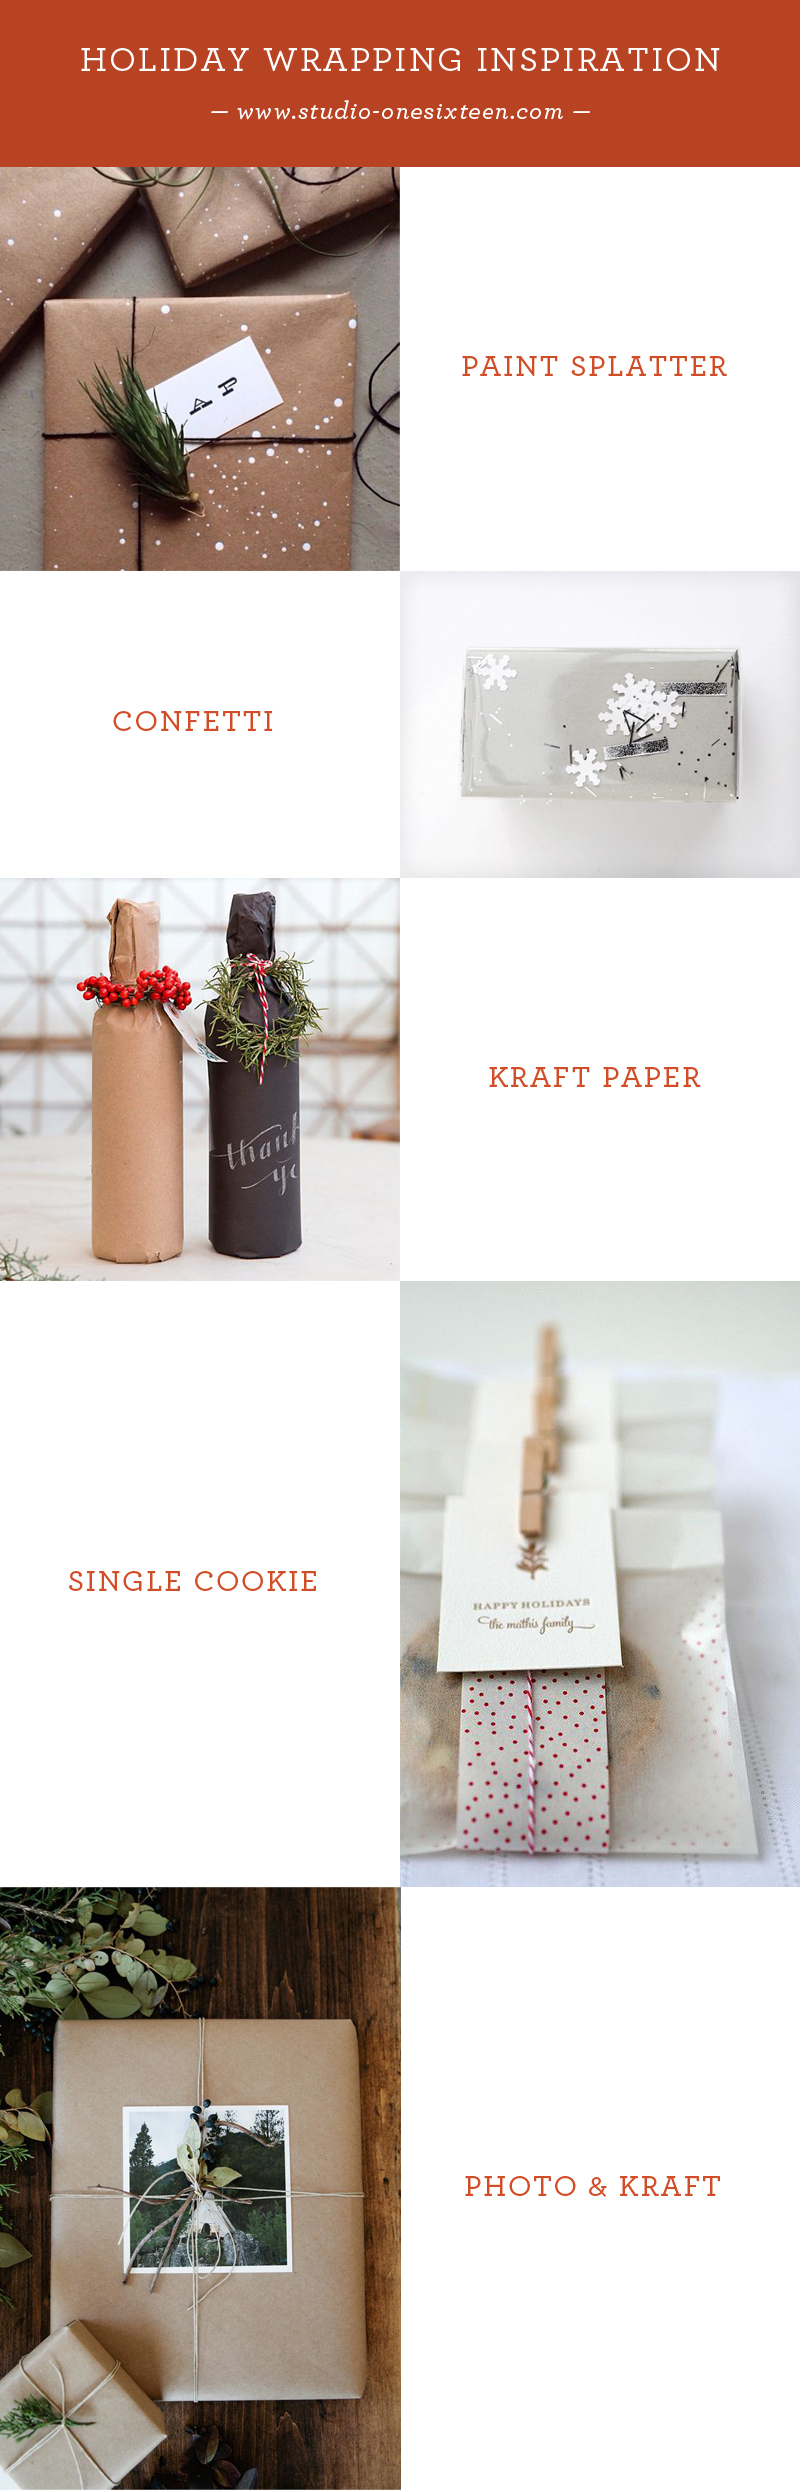 Paint Splatter Wrap / Confetti Wrap / Kraft Paper Wrap / Single Cookie Wrap / Photo & Kraft Paper Wrap